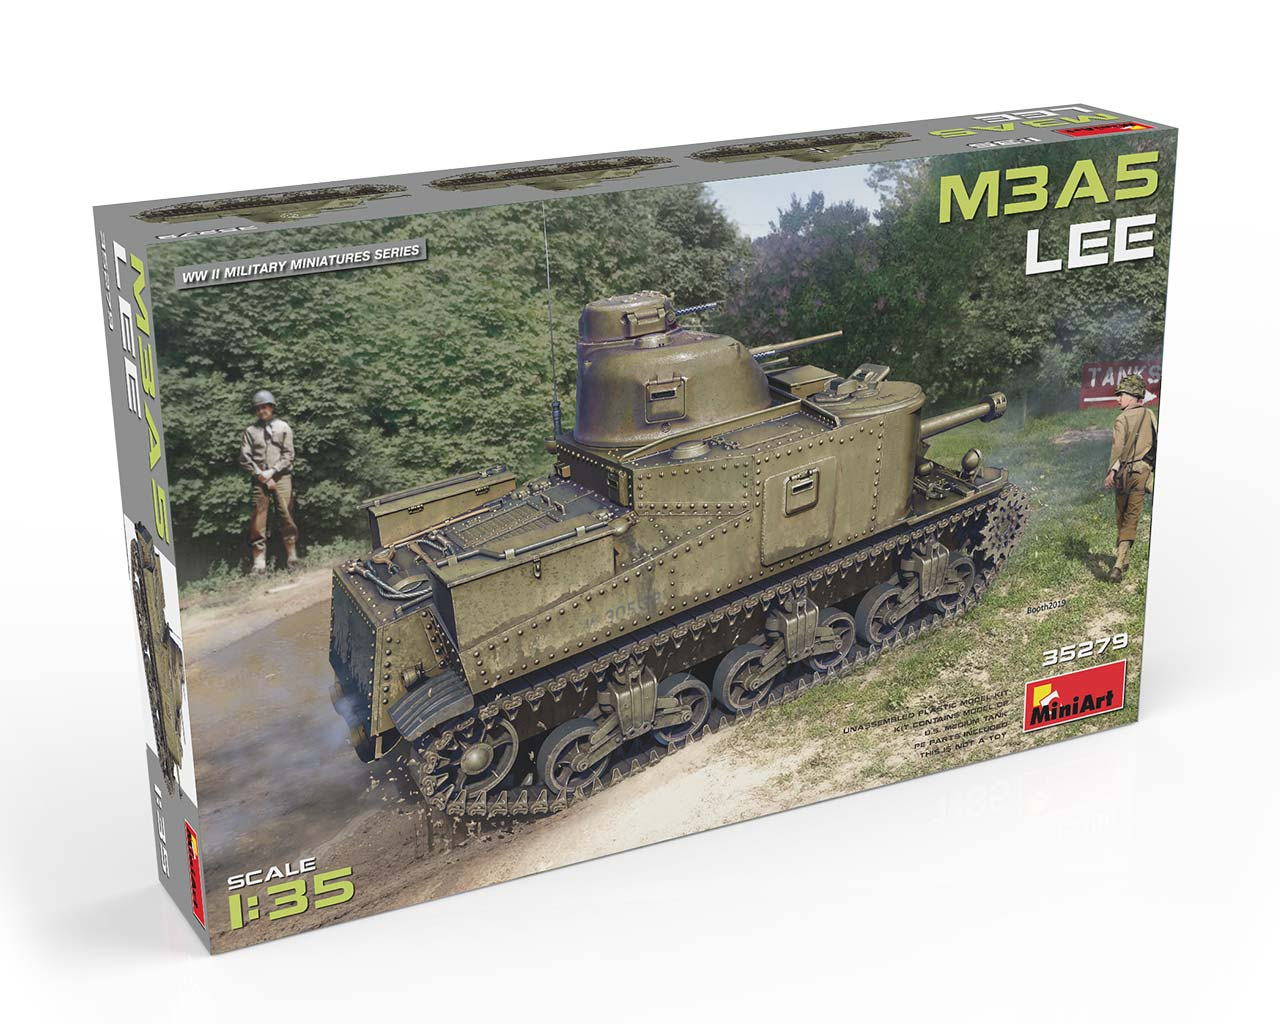 New Photos of Kit: 35279 M3A5 LEE